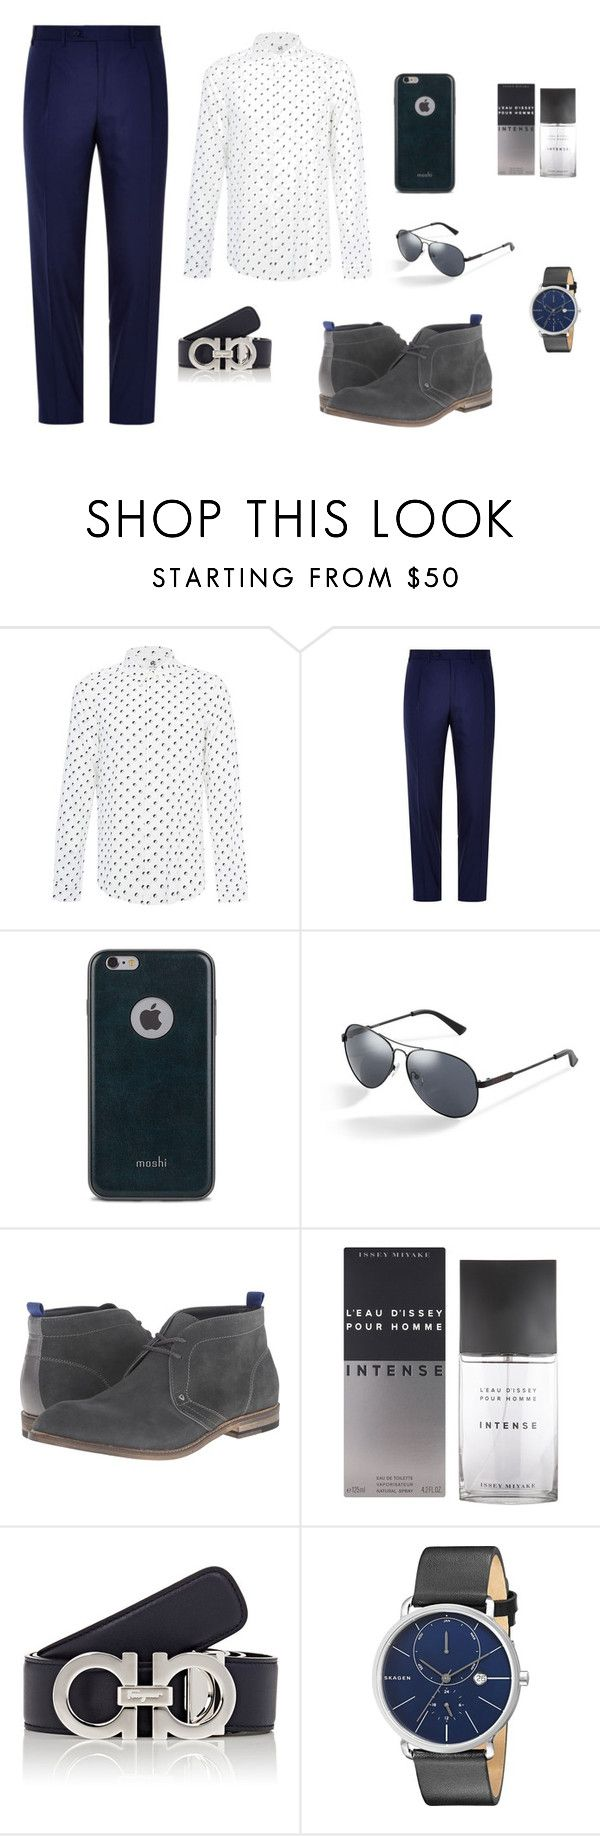 """Guess who..."" by ustine on Polyvore featuring PS Paul Smith, Canali, Moshi, GUESS, Issey Miyake, Salvatore Ferragamo, Skagen, men's fashion i menswear"